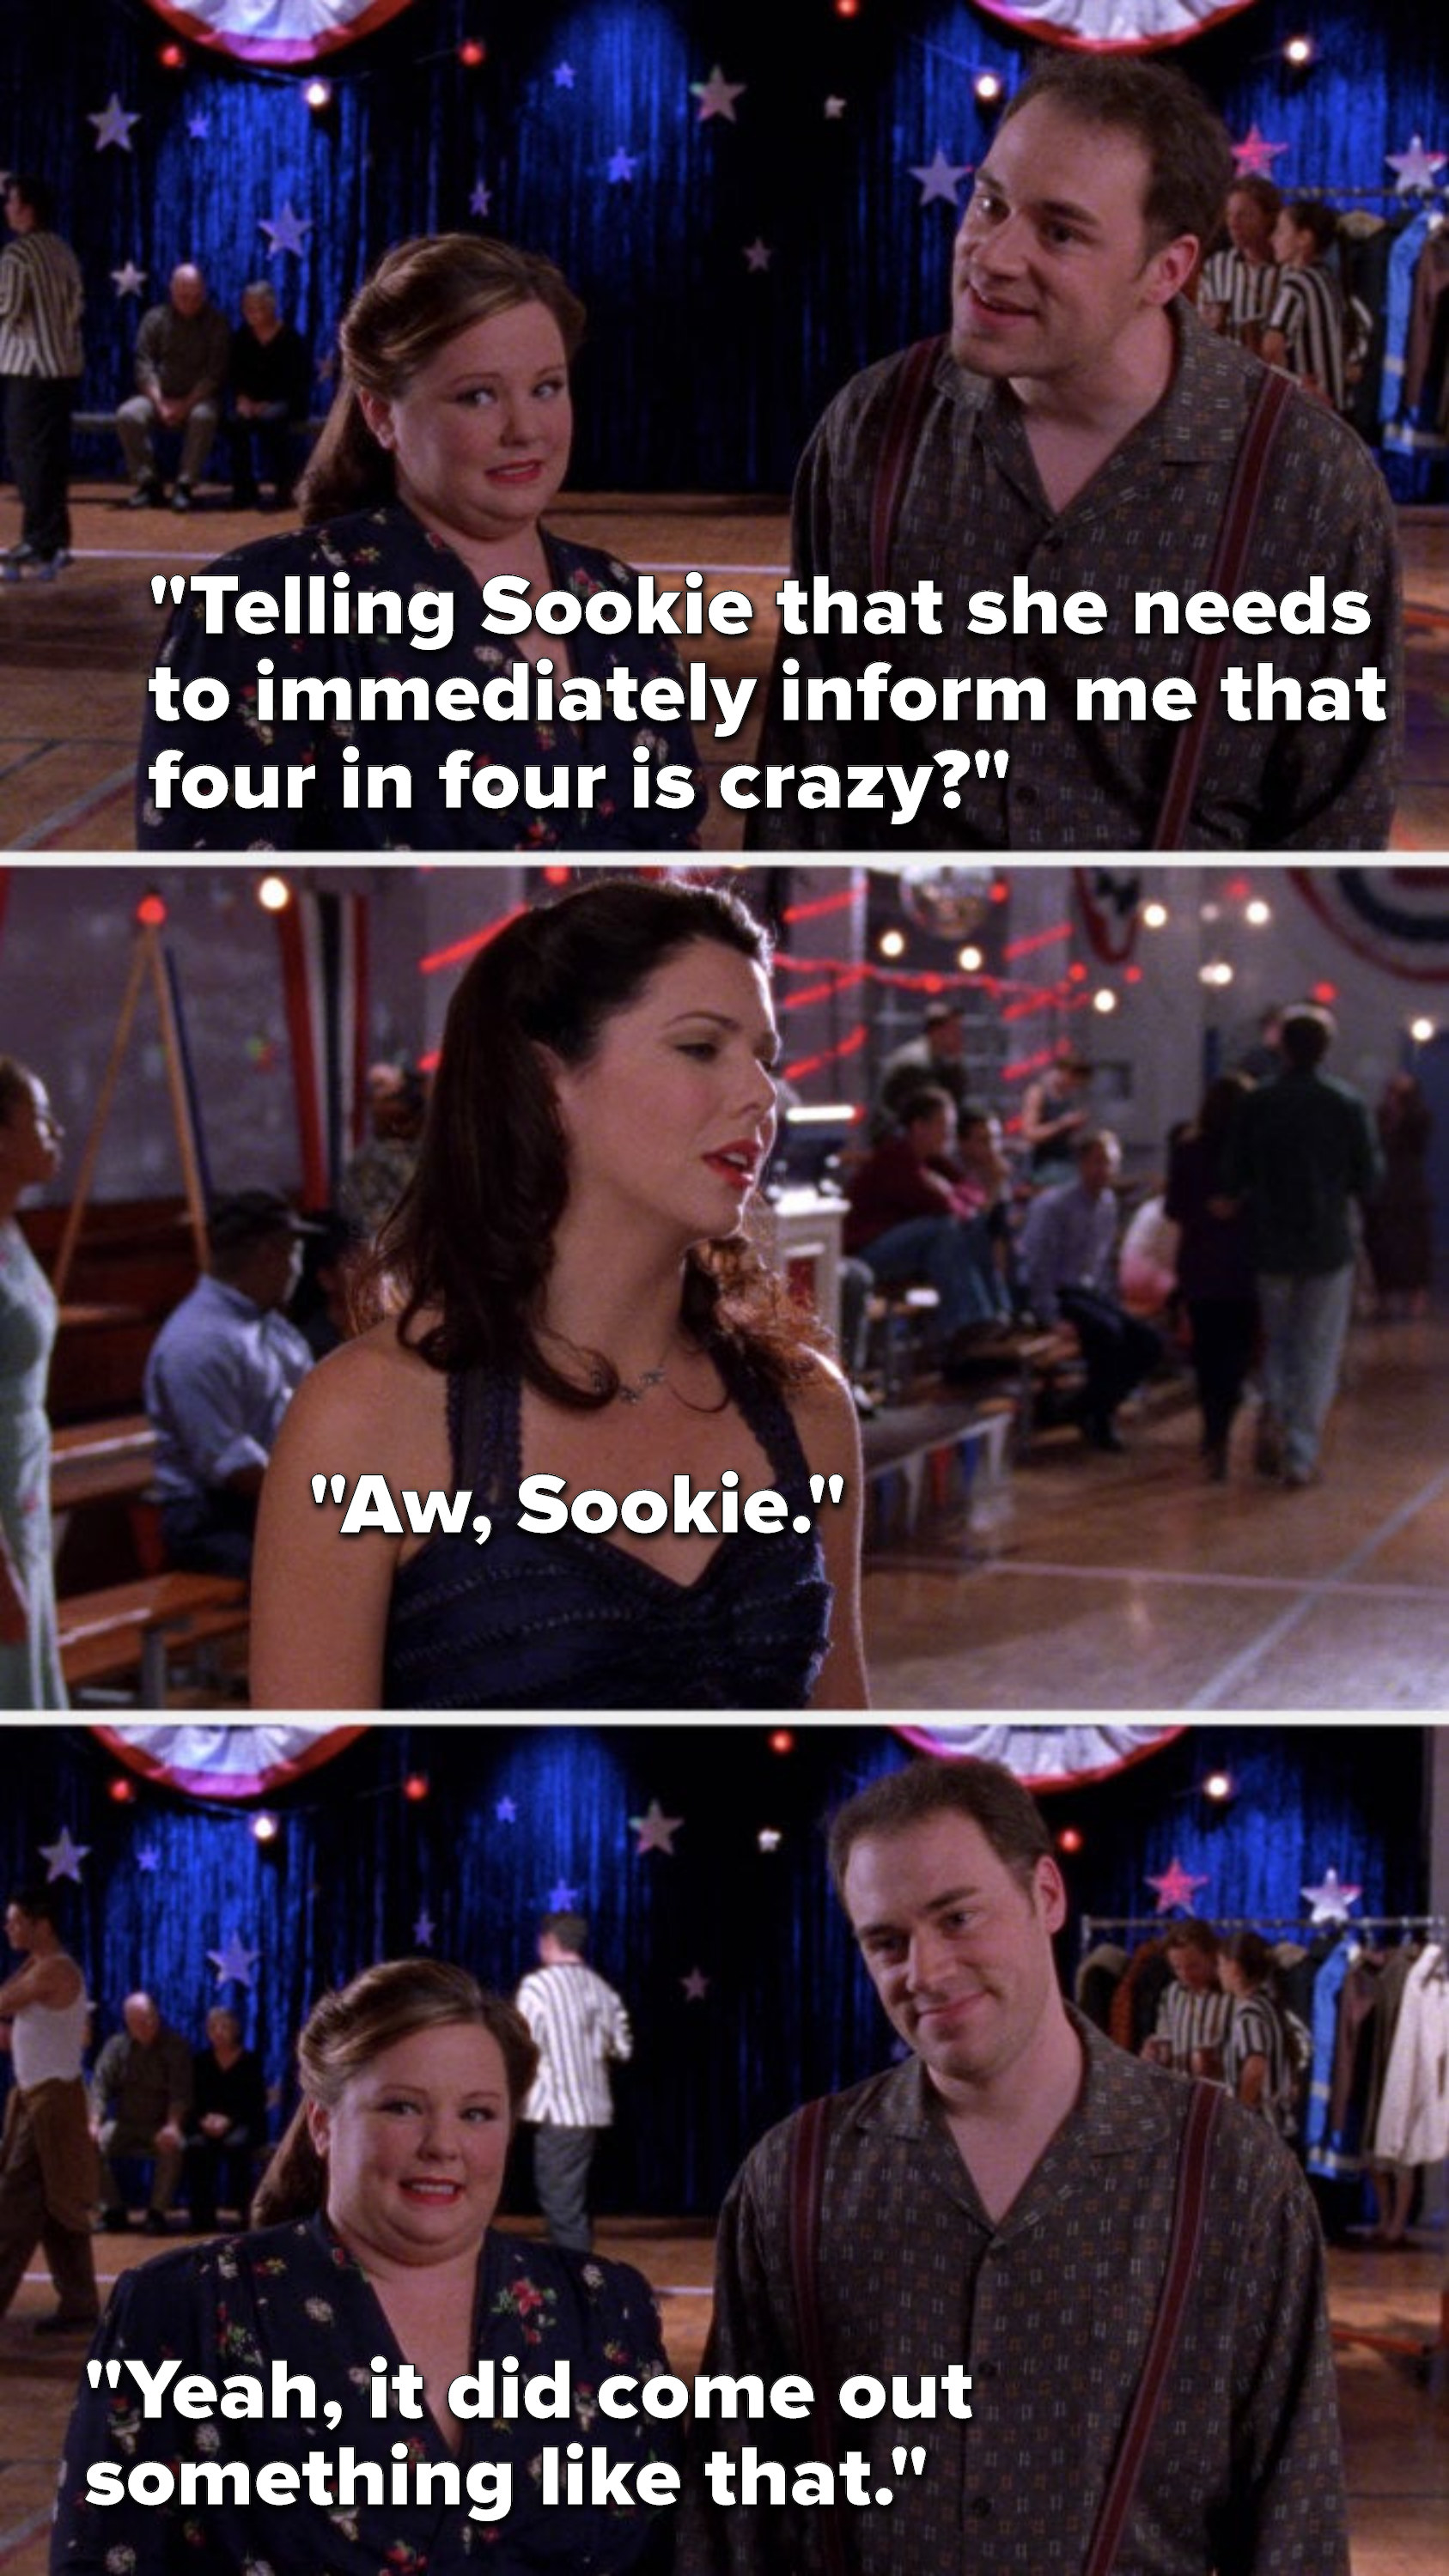 """Jackson says, """"Telling Sookie that she needs to immediately inform me that four in four is crazy,"""" Lorelai says, """"Aw, Sookie,"""" and Sookie says, """"Yeah, it did come out something like that"""""""